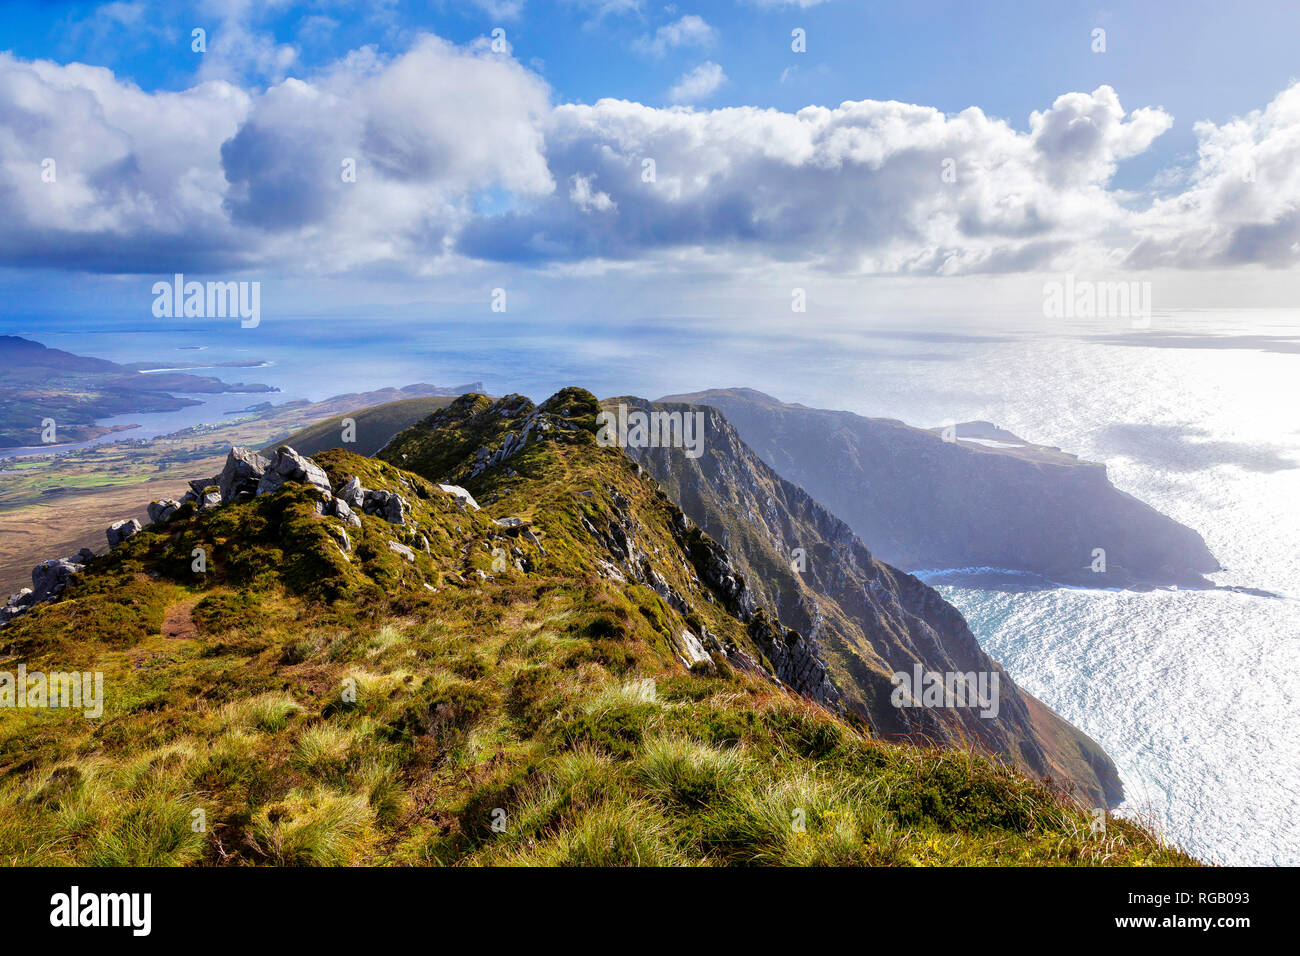 Slieve League, Sliabh Liag, cliffs in West Donegal, Ireland Stock Photo